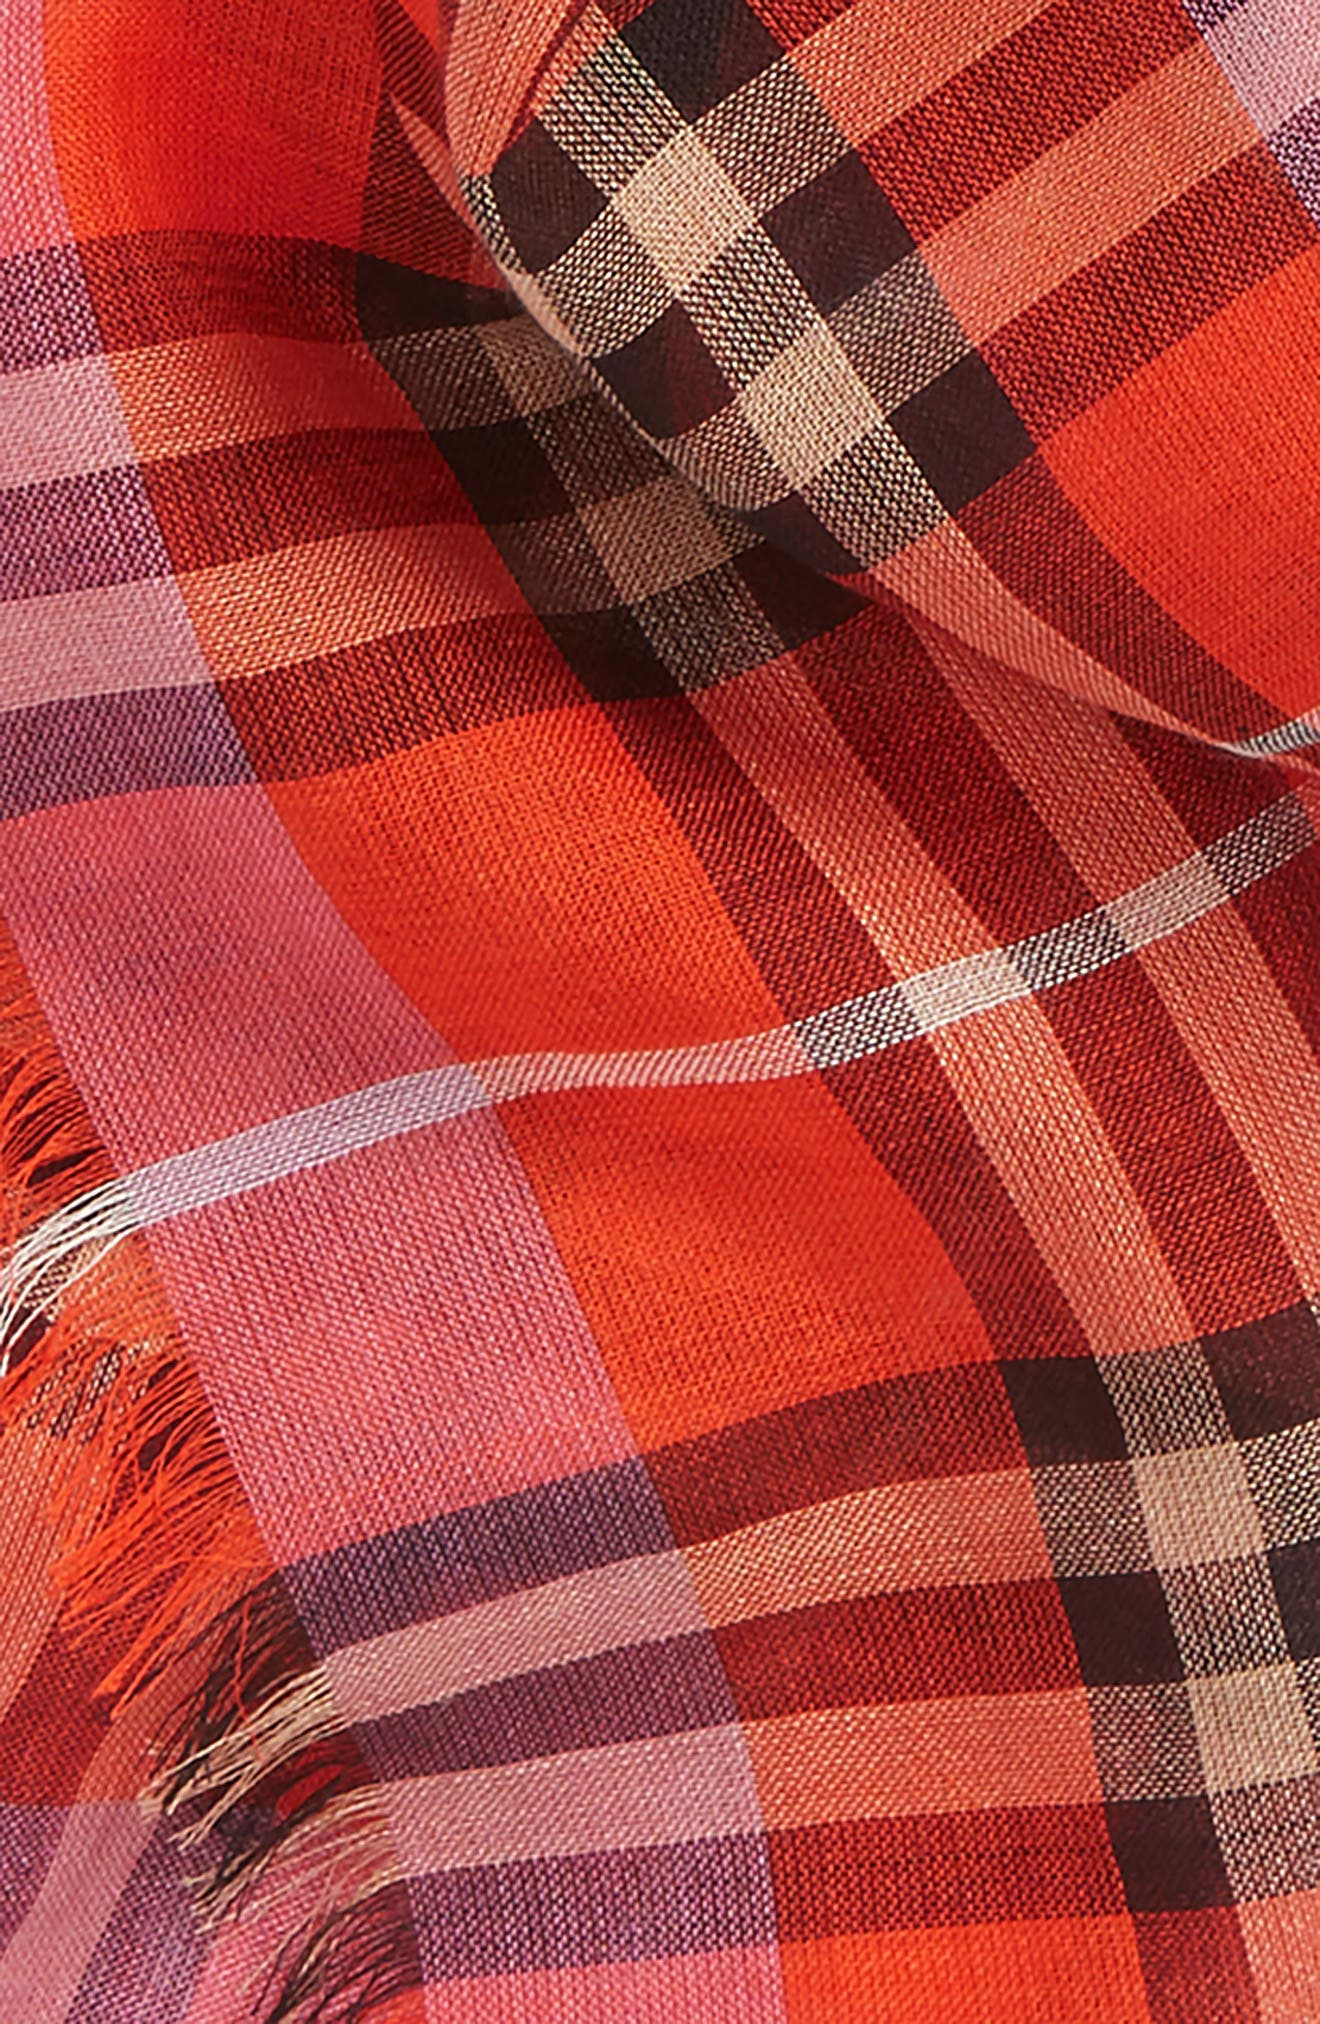 Alternate Image 3  - Burberry Vintage Check Wool & Silk Blend Scarf (Girls)